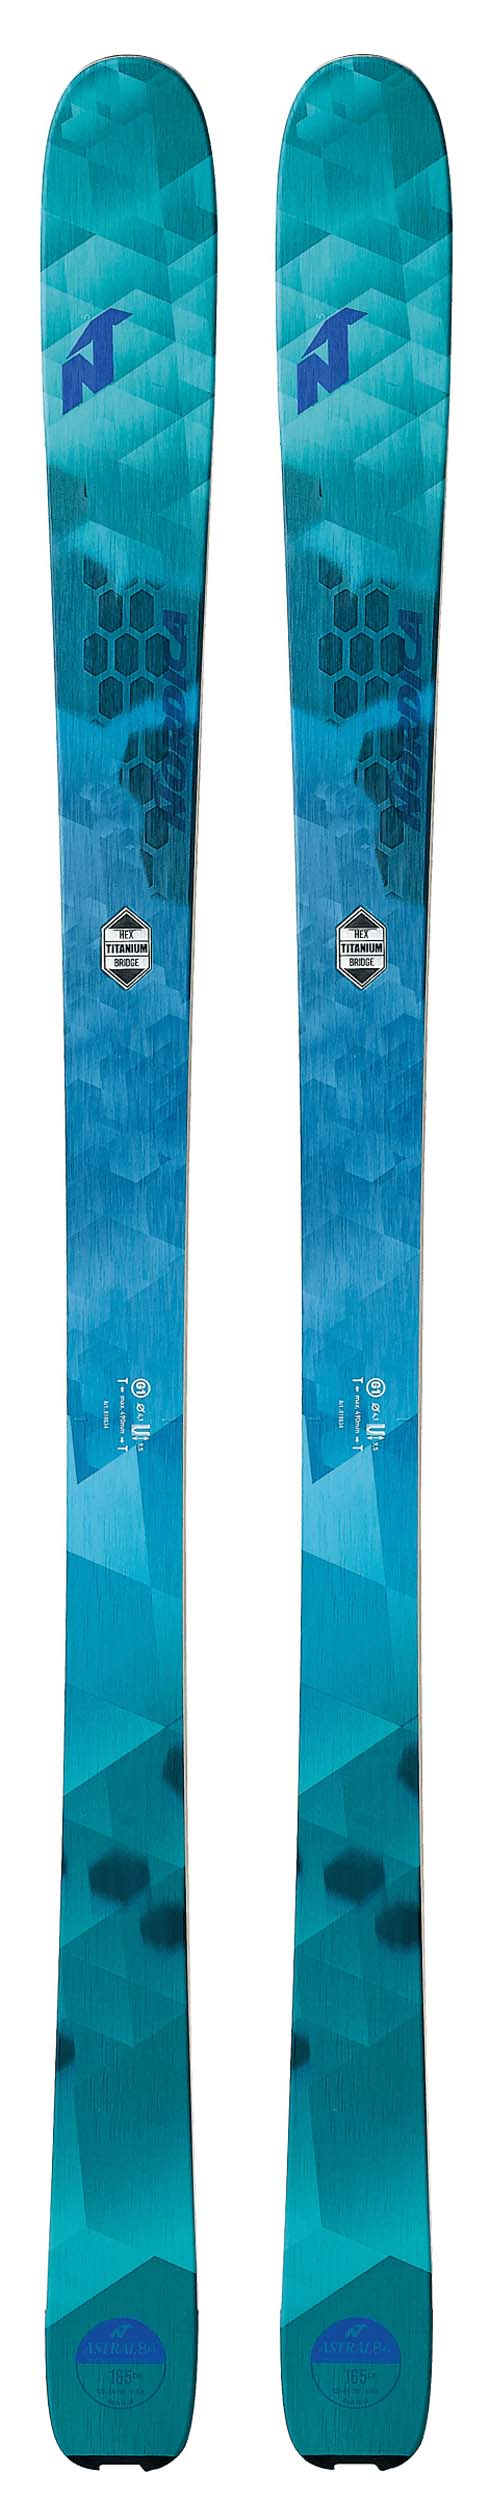 Nordica 2018 Astral 84 Skis (Without Bindings / Flat) NEW !! 151cm